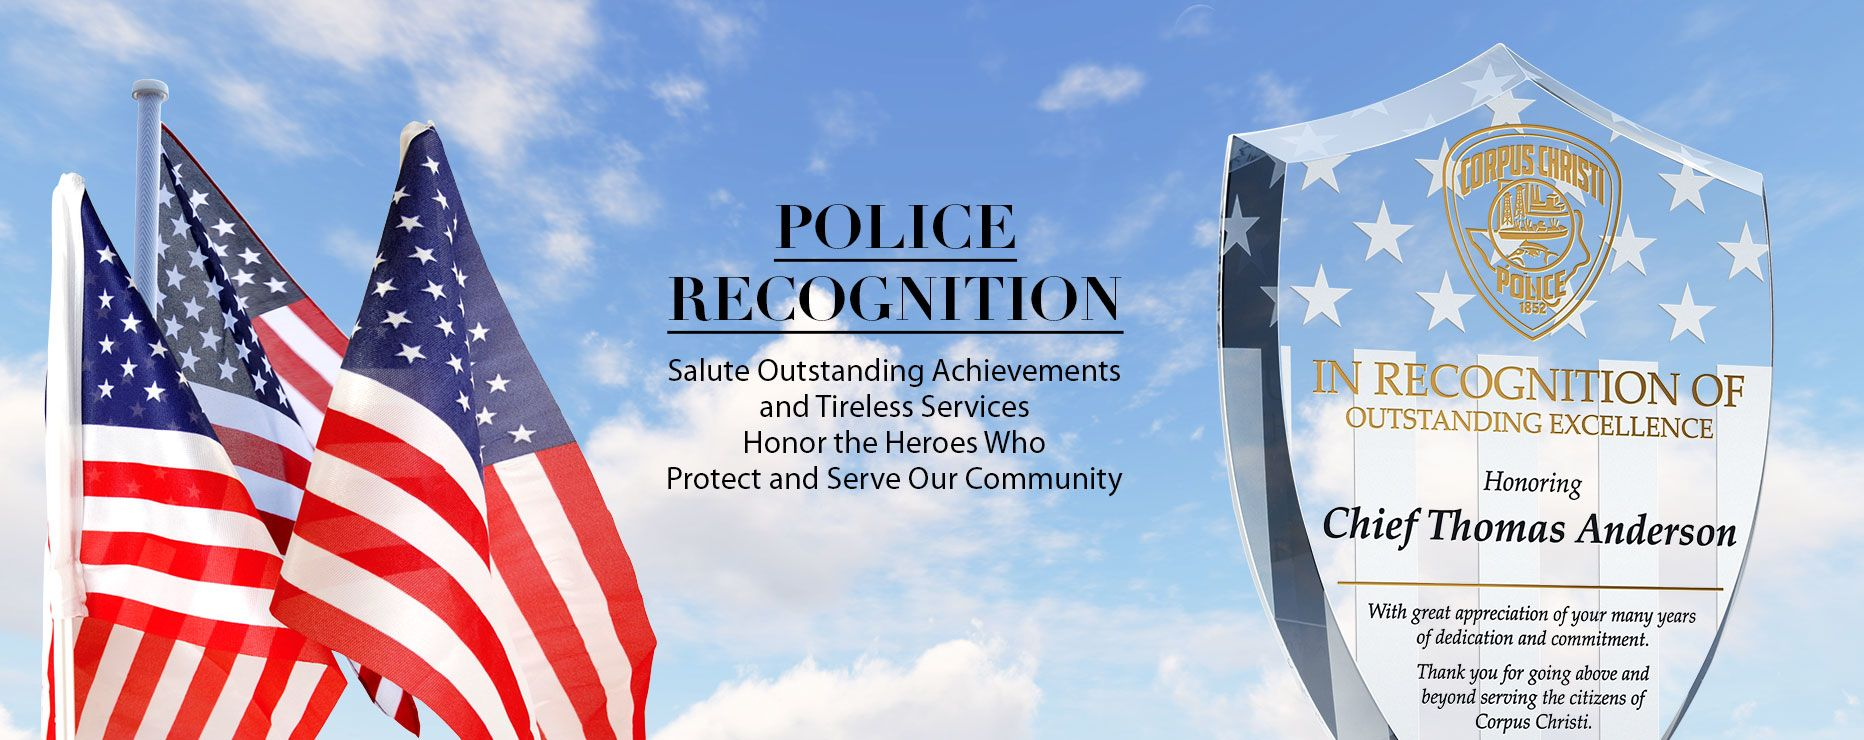 Police Appreciation Quotes Messages And Plaque Wording Ideas Diy